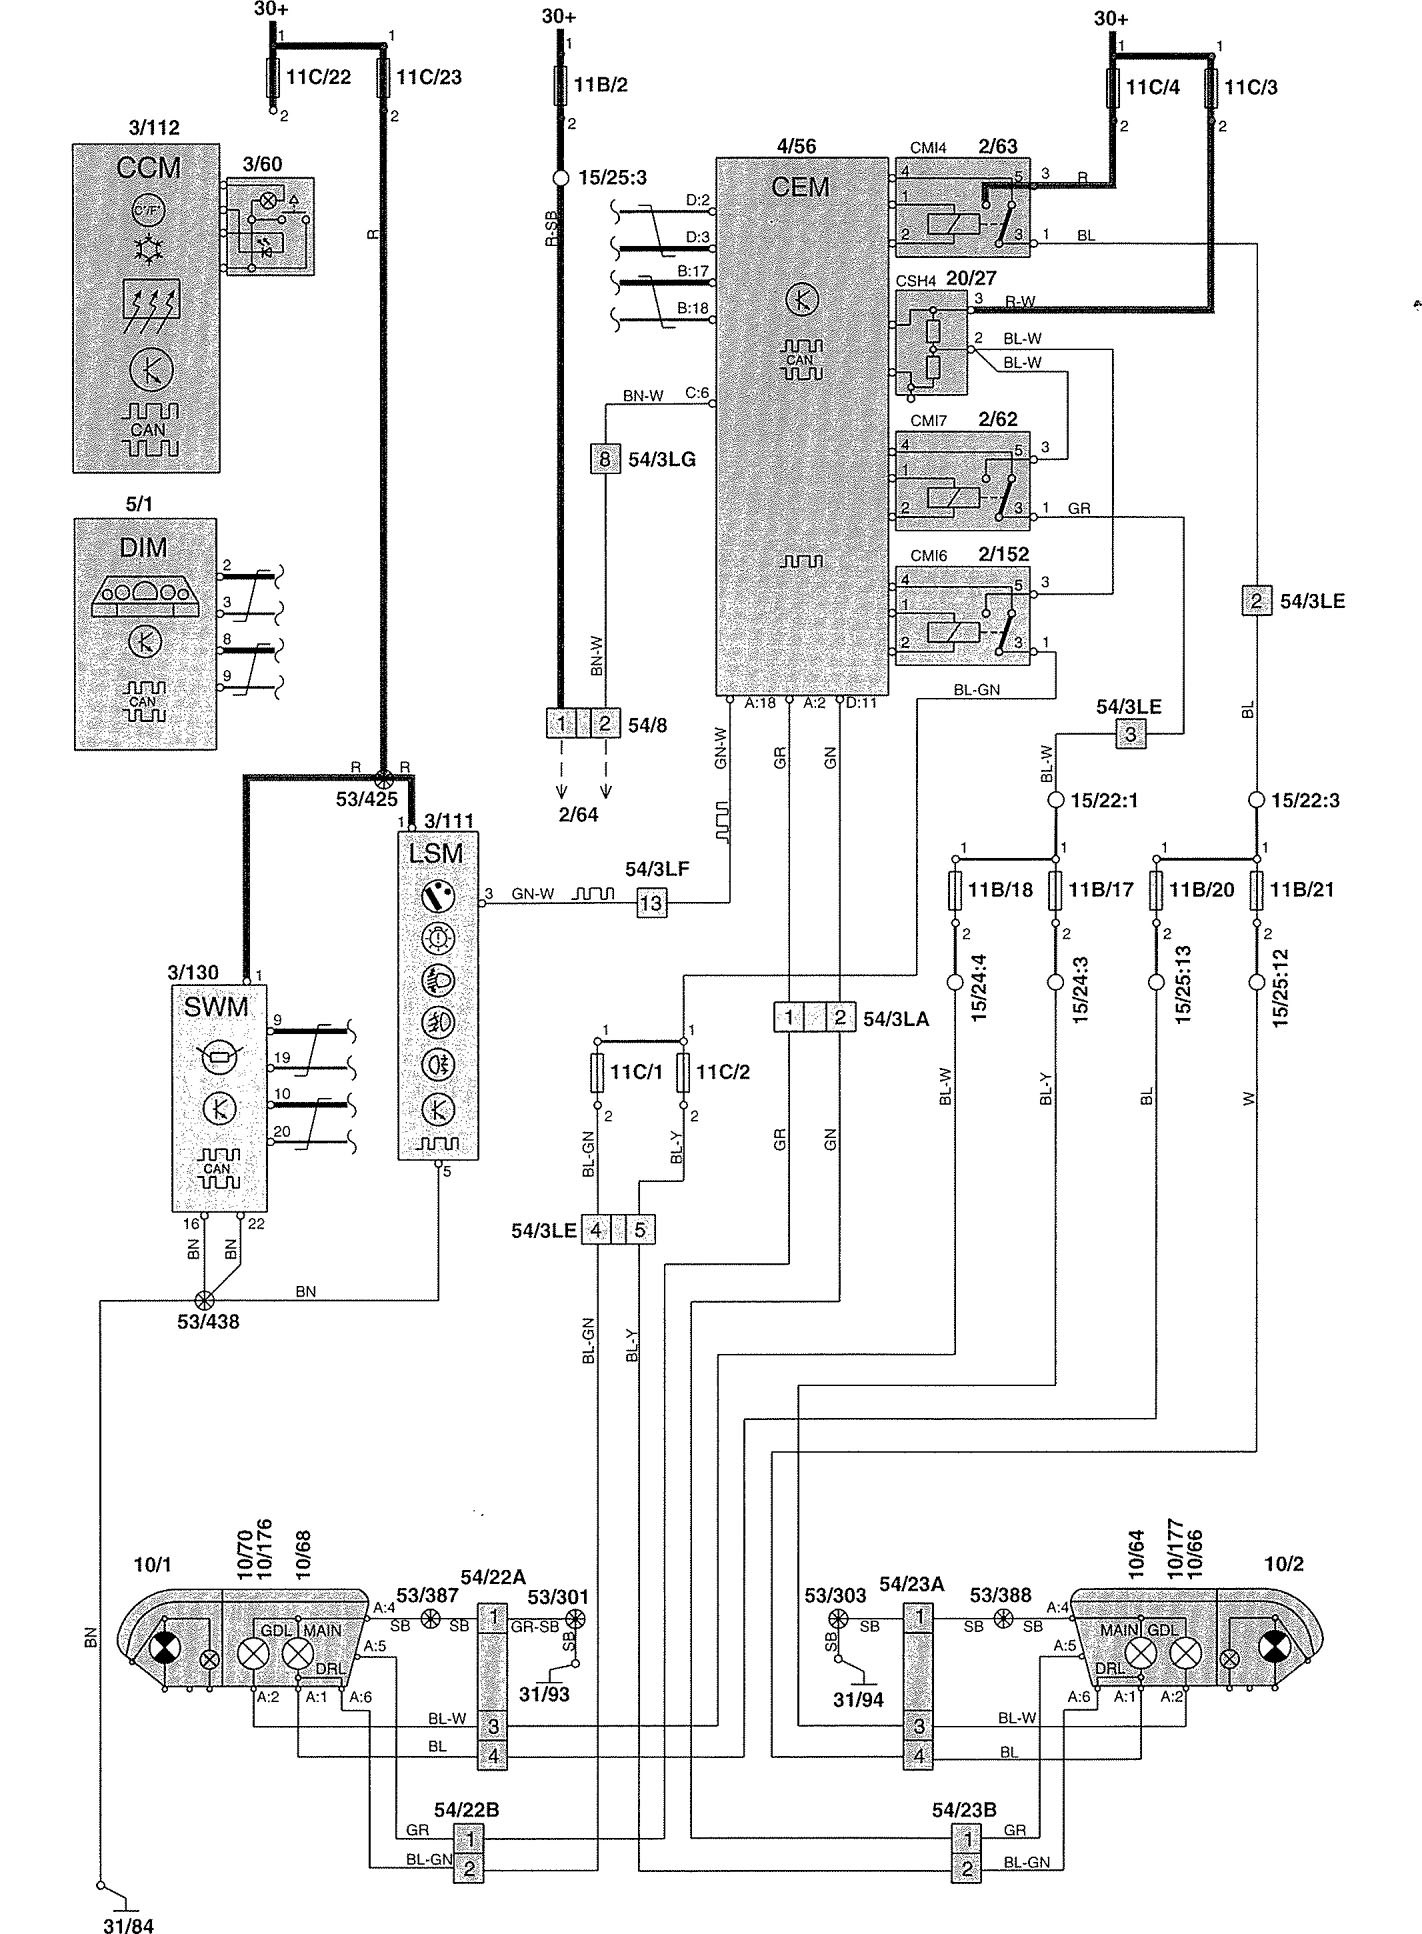 Volvo V70 Wiring Diagram Manual Of 2005 Xc70 2002 Diagrams Headlamps Carknowledge Rh Info